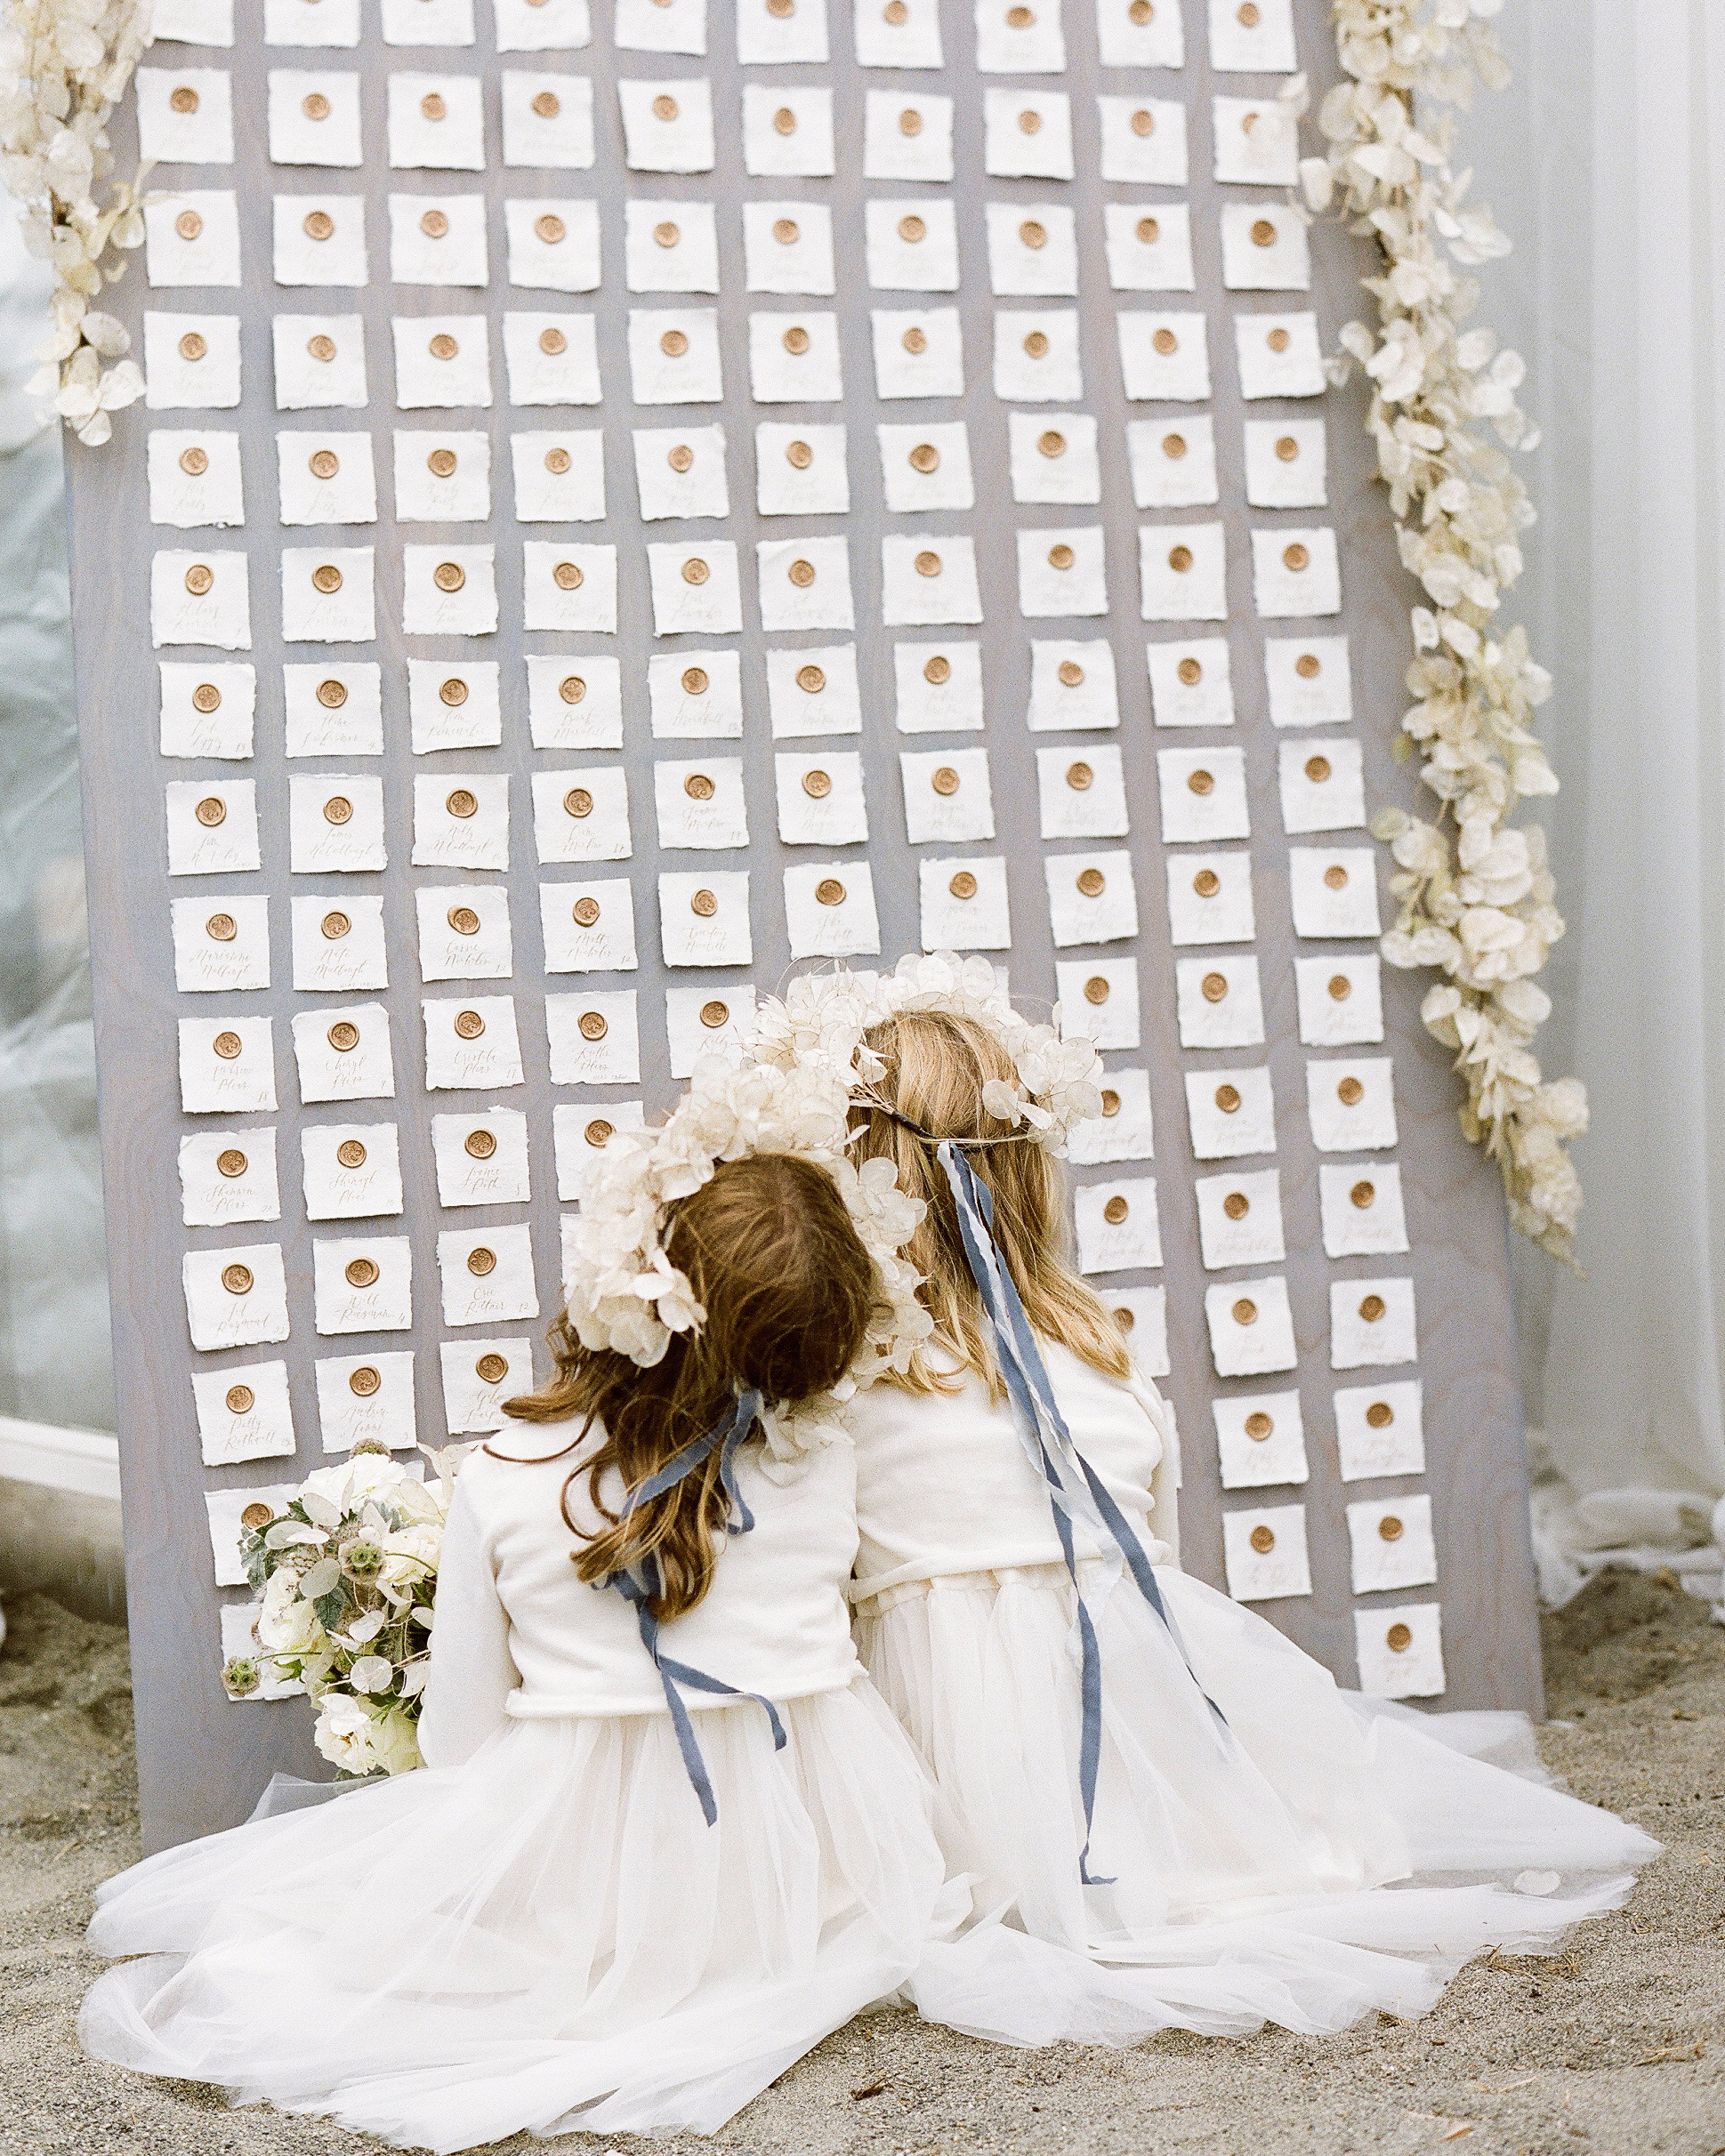 kaitlin dan wedding escort cards flower girls